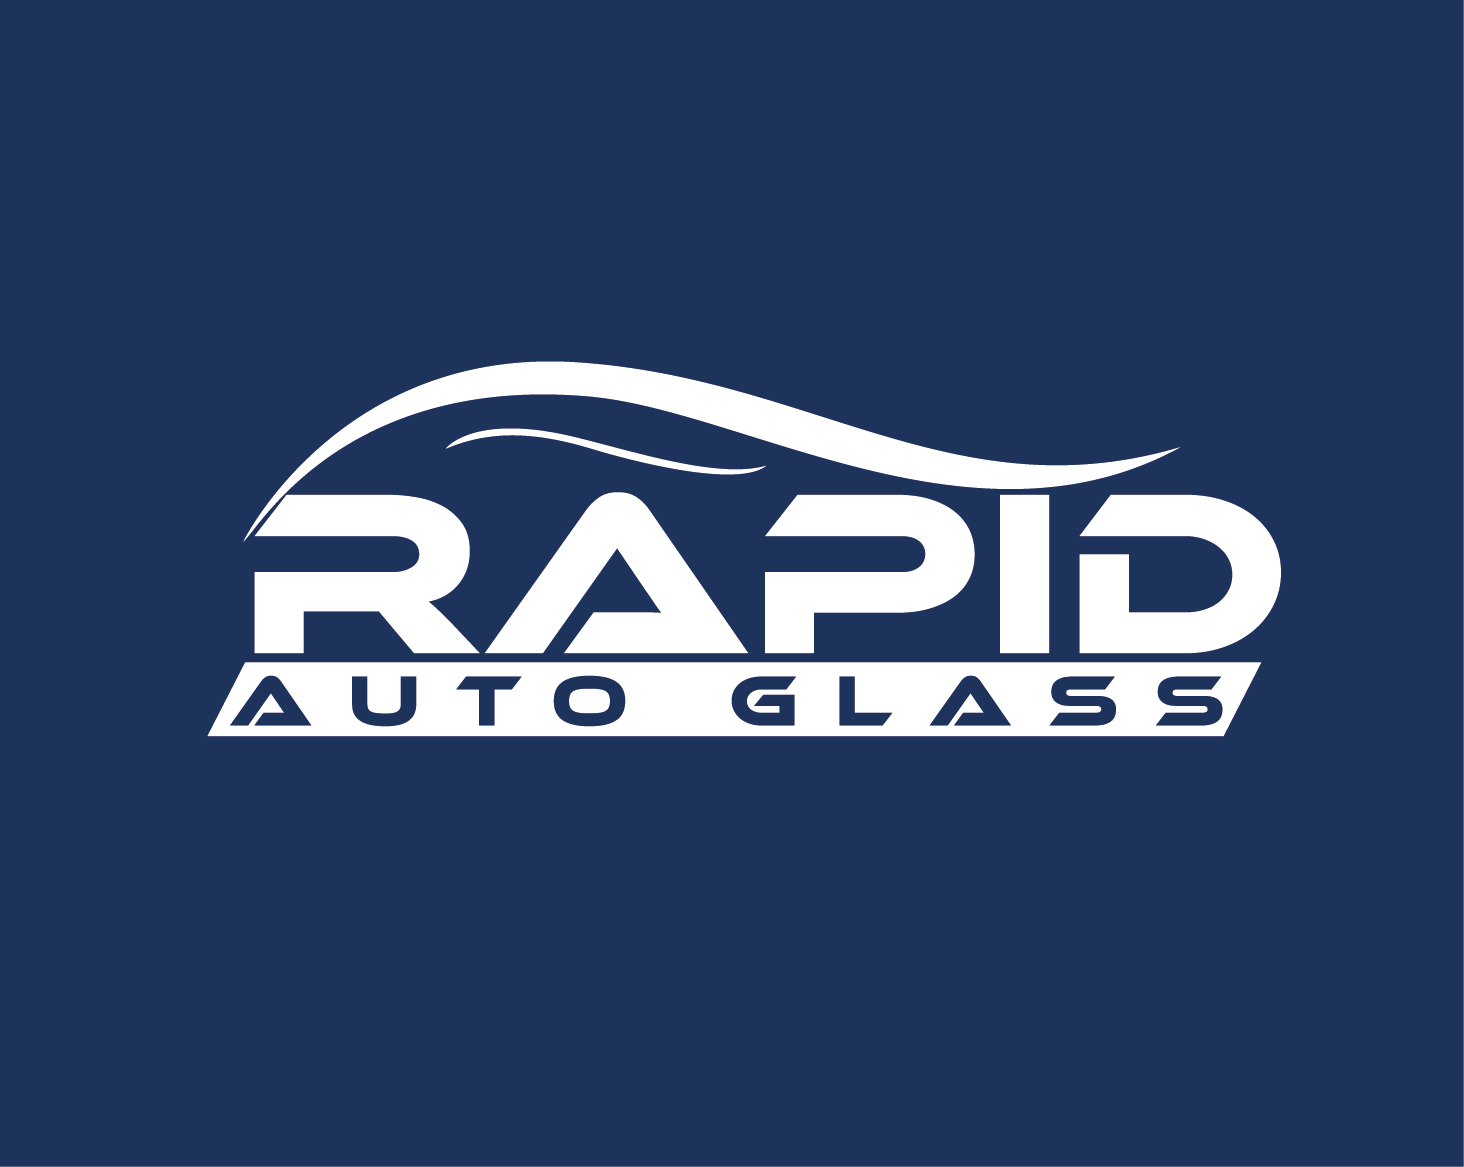 Logo Design by VENTSISLAV KOVACHEV - Entry No. 180 in the Logo Design Contest Unique Logo Design Wanted for Rapid Auto Glass.